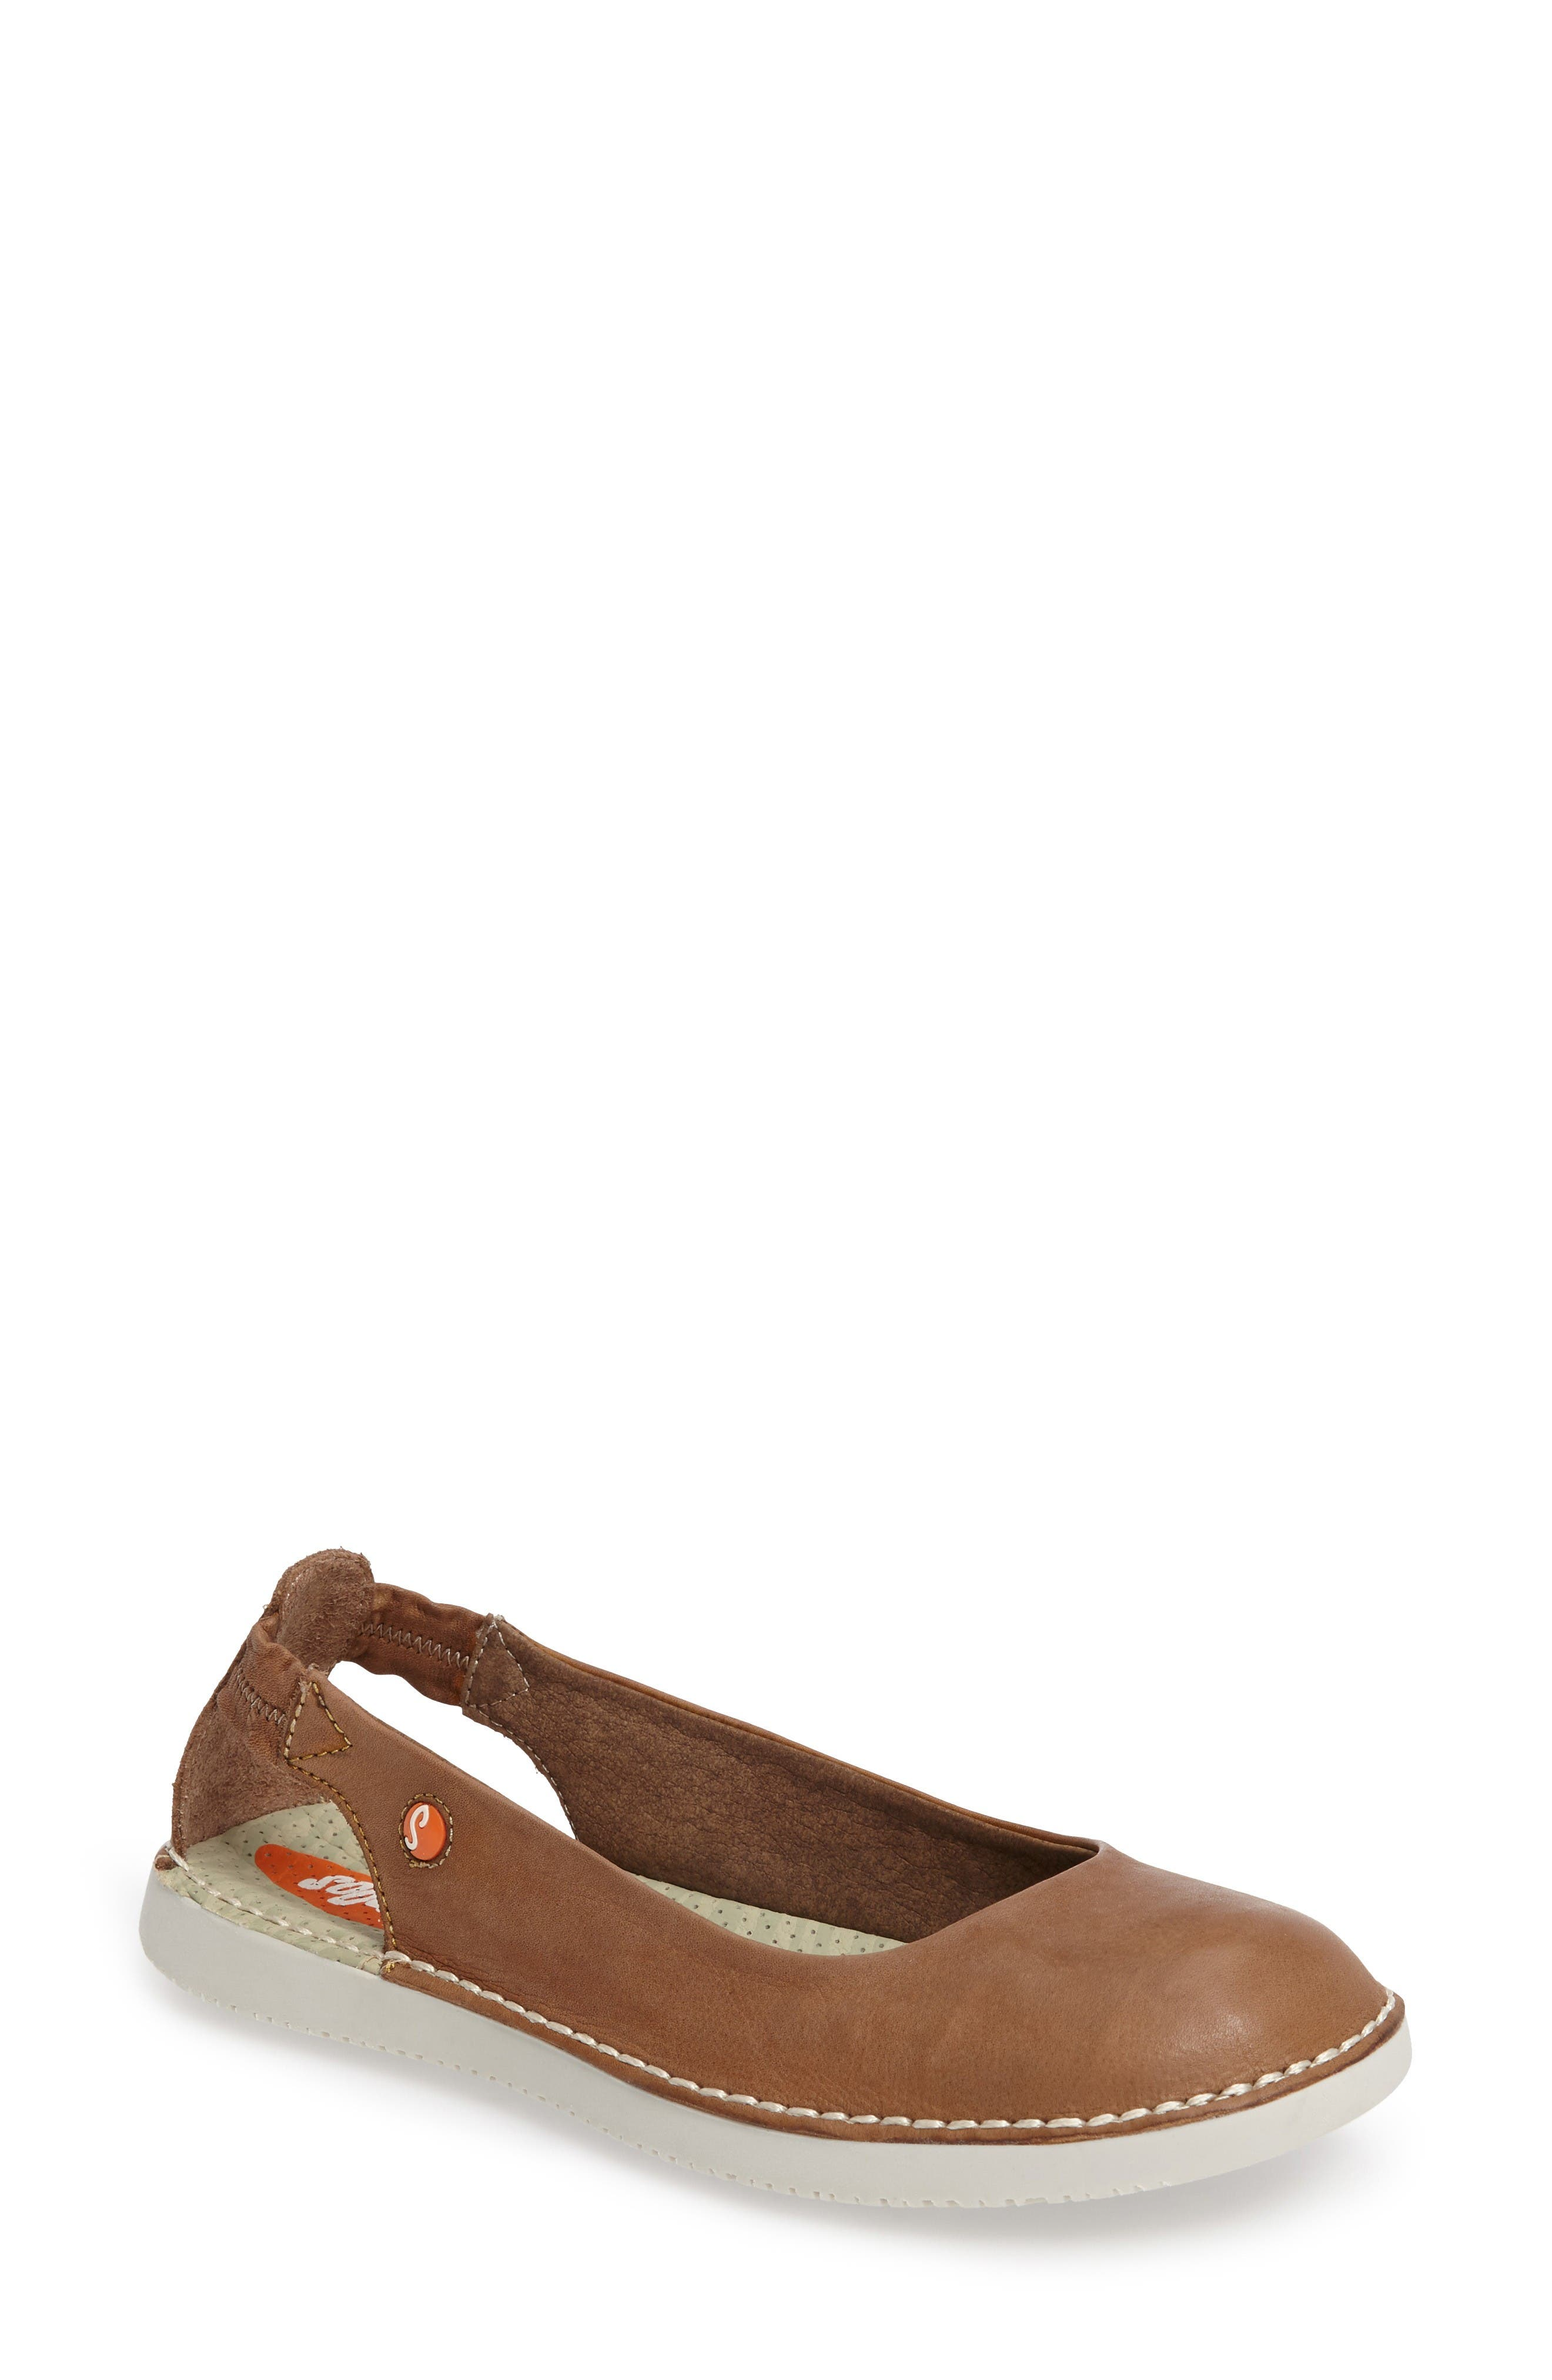 Tor Ballerina Flat,                             Main thumbnail 1, color,                             Brown Washed Leather